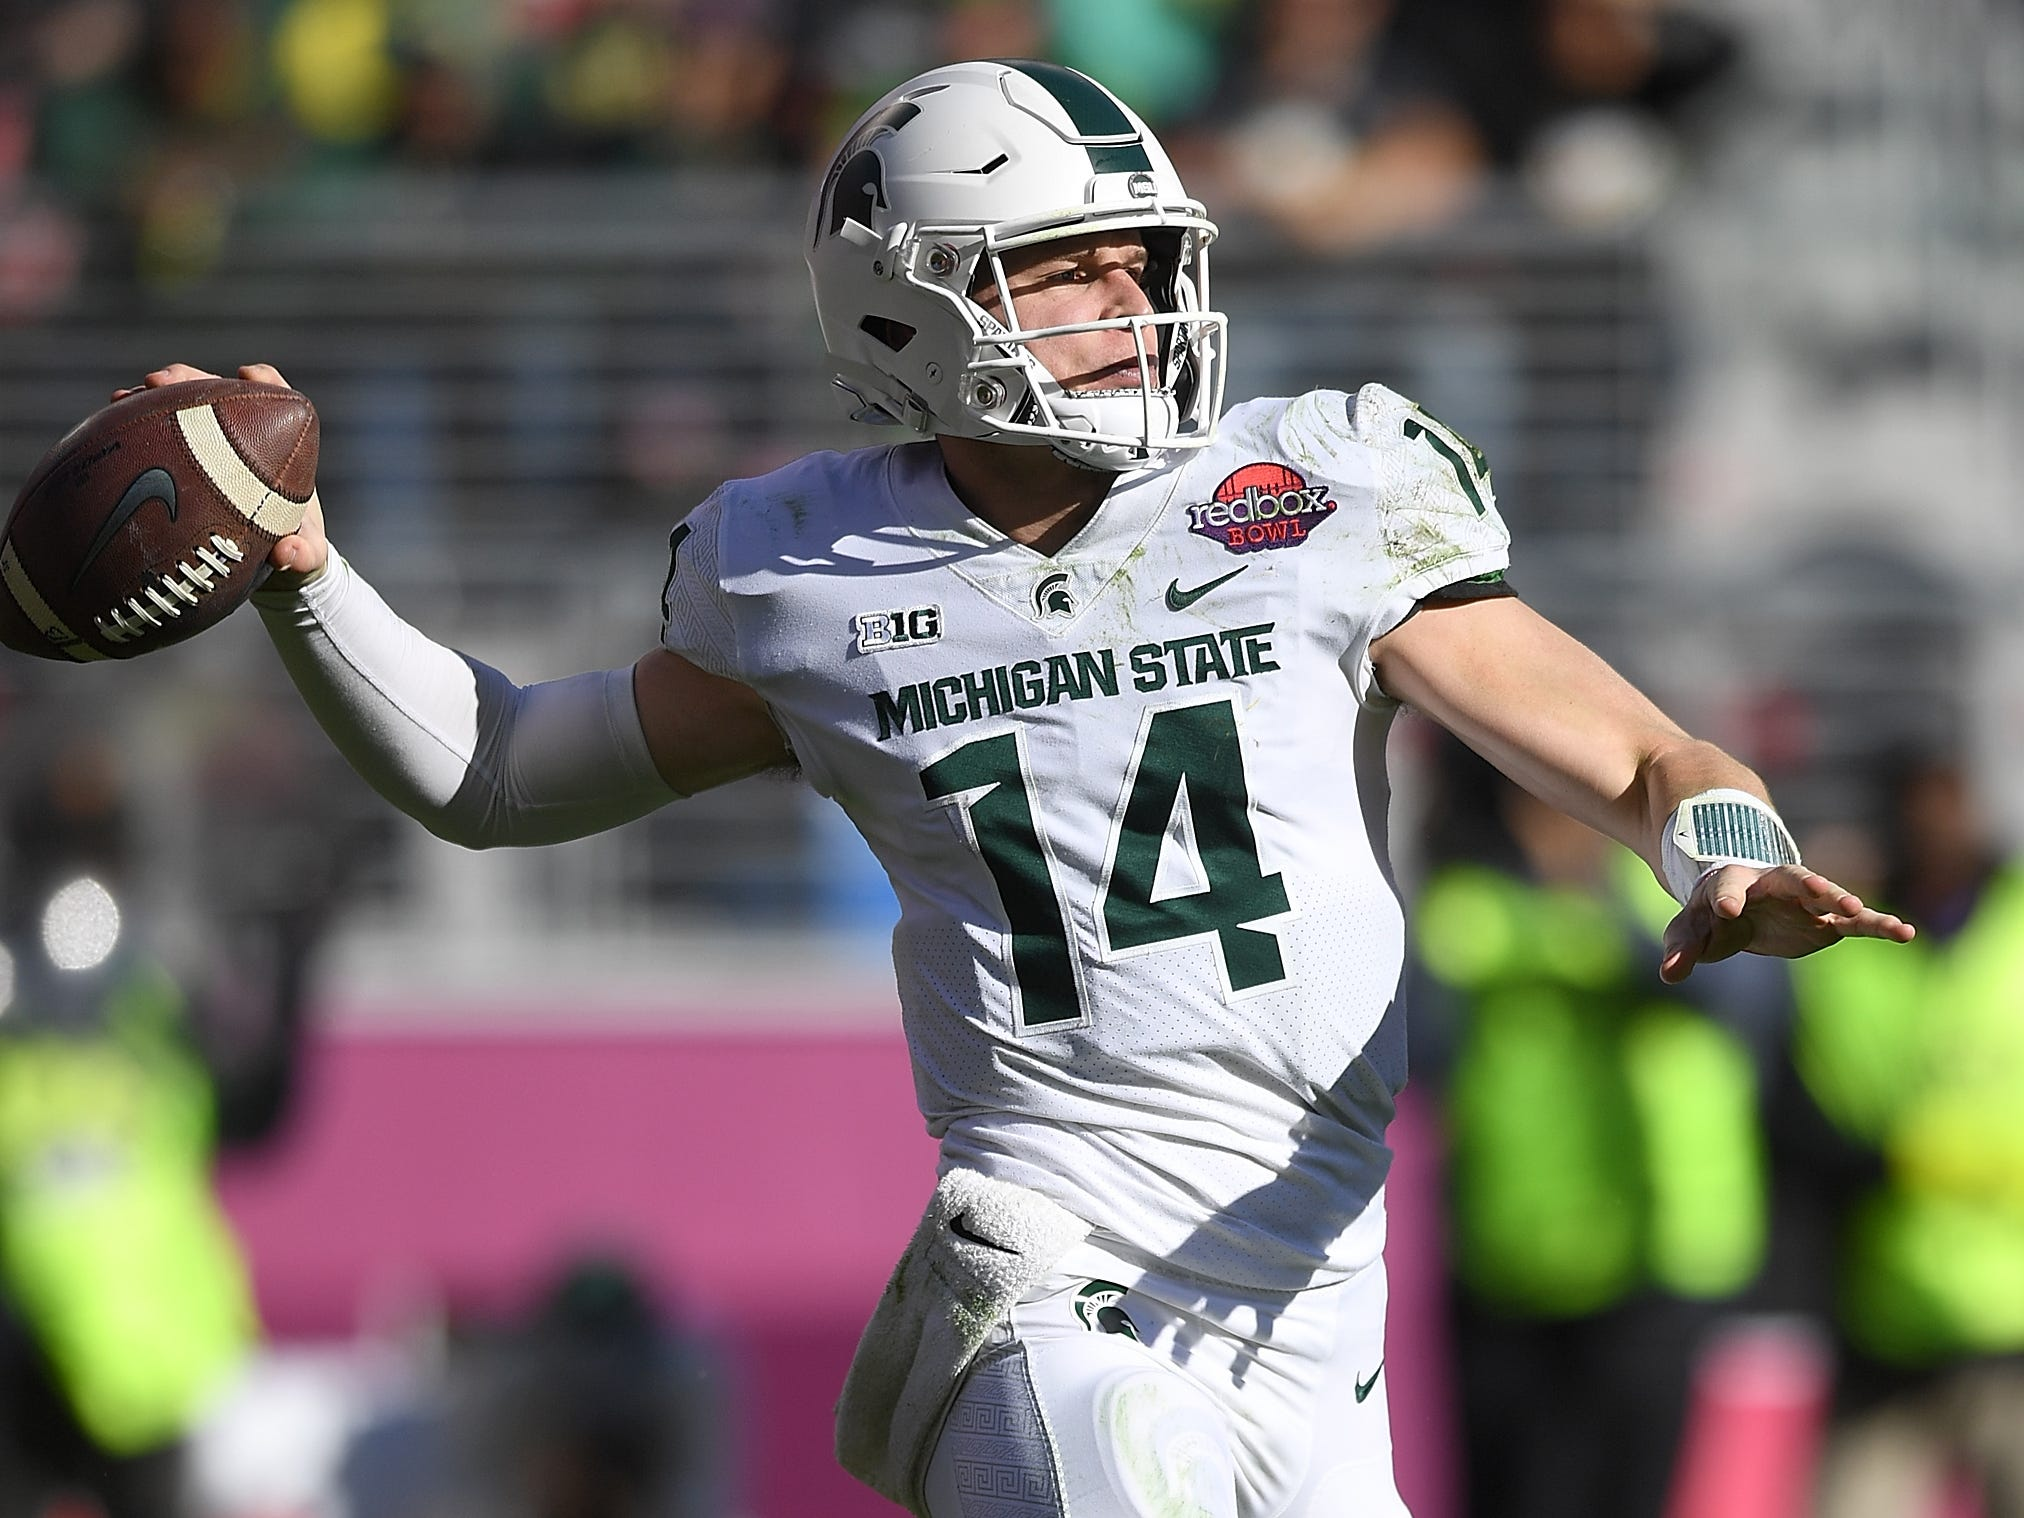 Brian Lewerke #14 of the Michigan State Spartans looks to pass against the Oregon Ducks during the first half of the Redbox Bowl at Levi's Stadium on December 31, 2018 in Santa Clara, California.